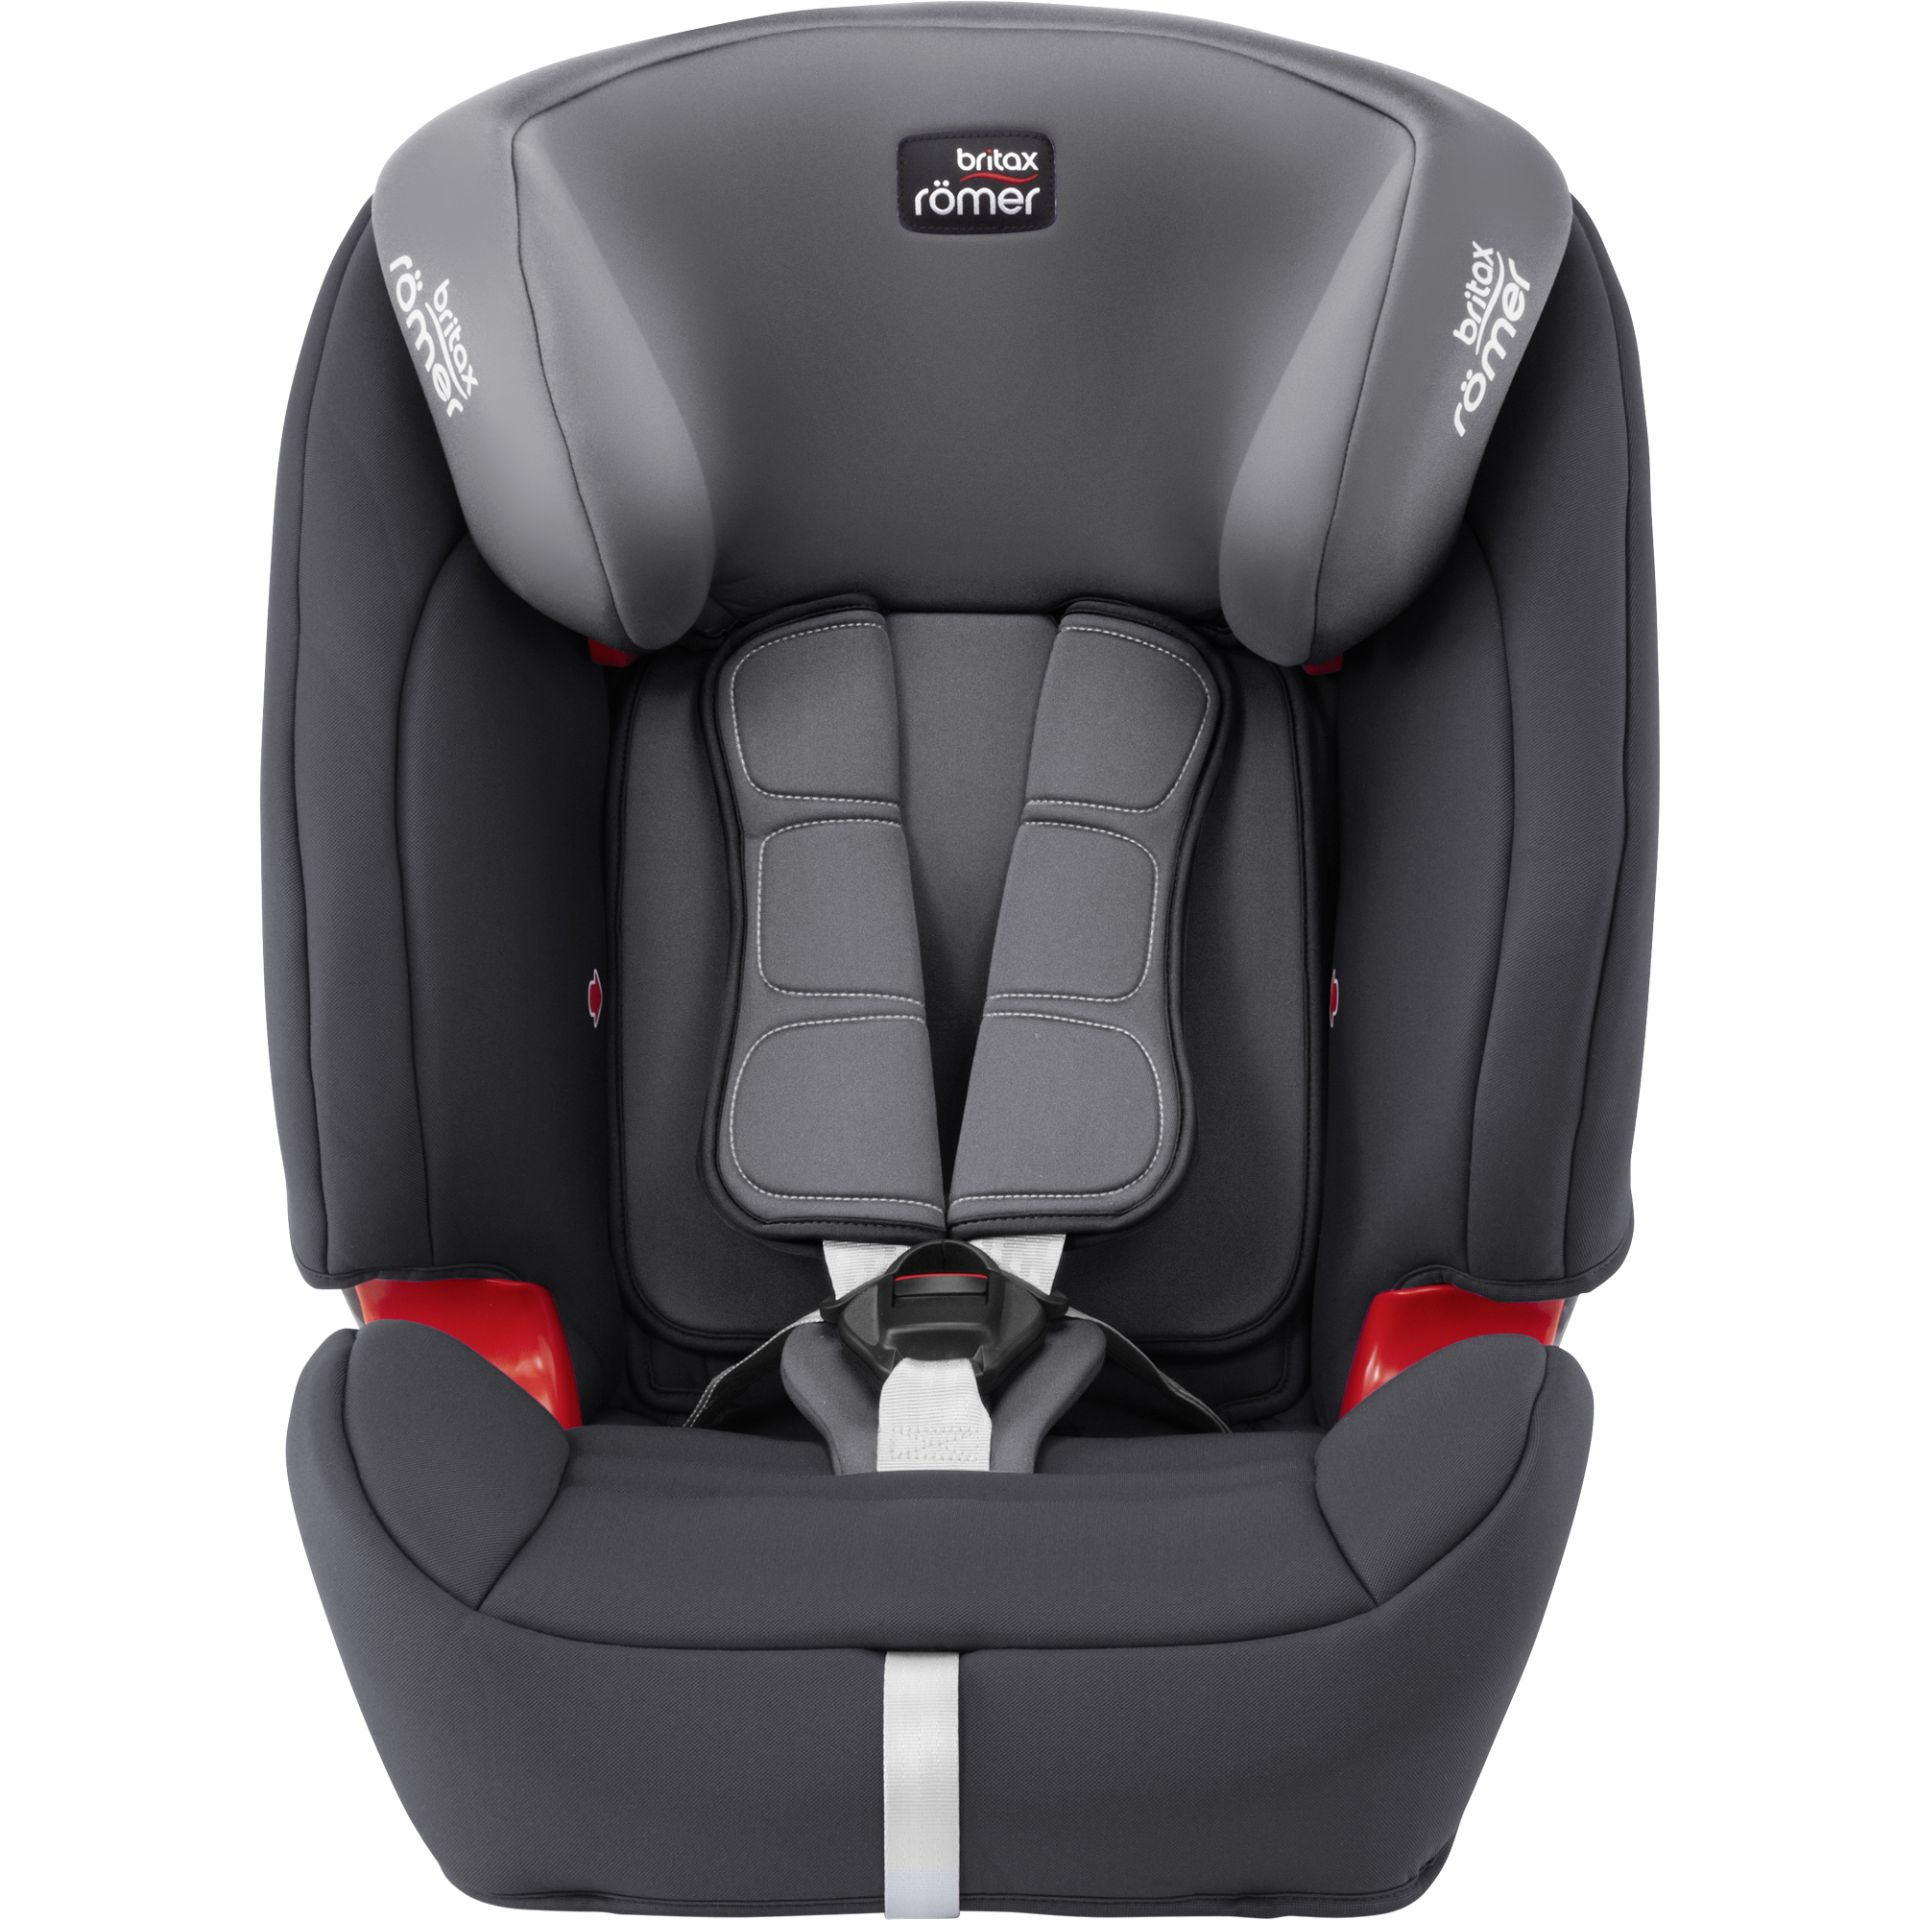 britax r mer car seat evolva 1 2 3 sl sict isofix buy at kidsroom car seats. Black Bedroom Furniture Sets. Home Design Ideas